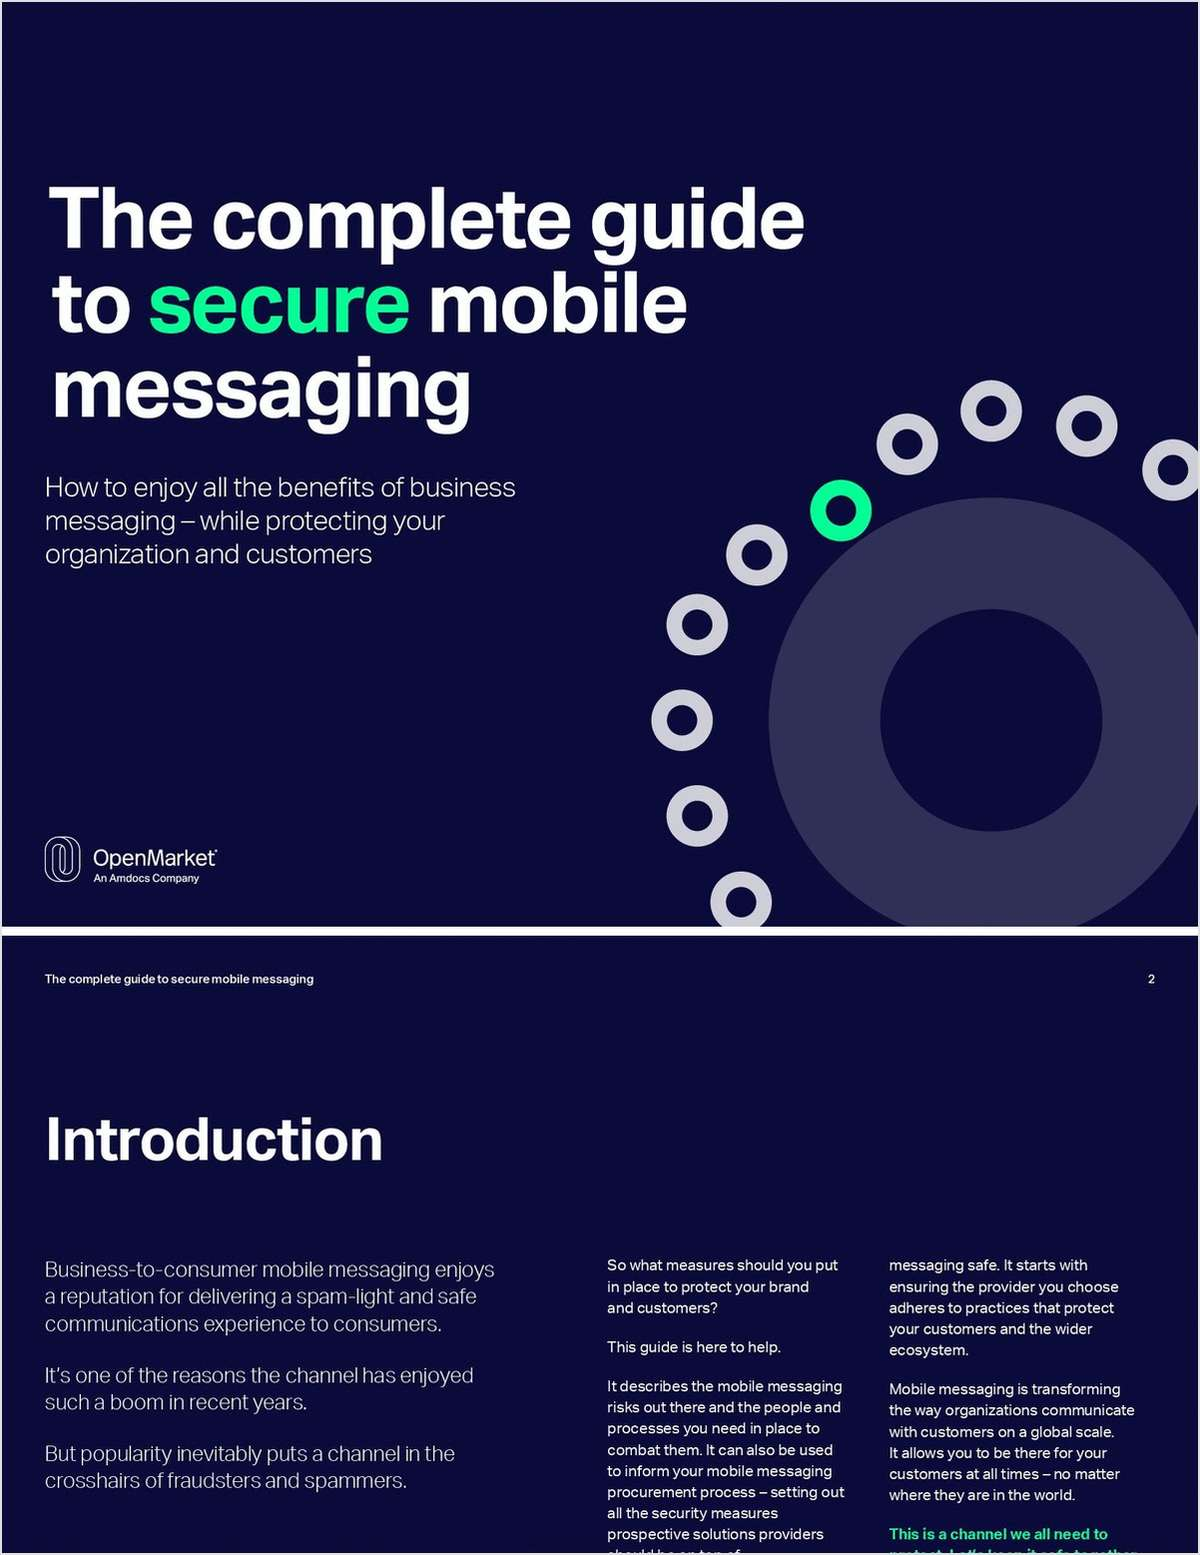 The Complete Guide to Secure Mobile Messaging